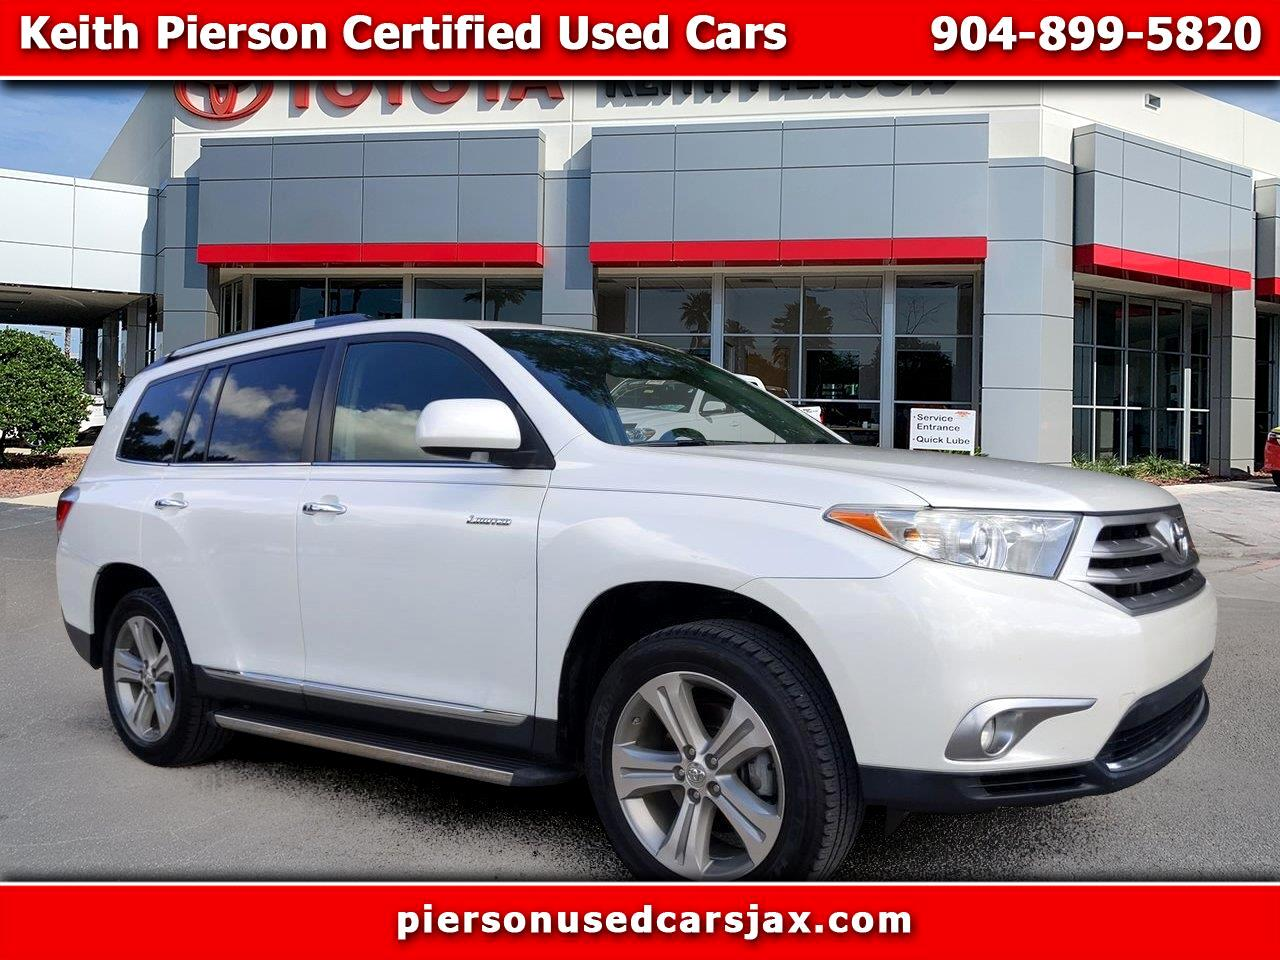 2012 Toyota Highlander FWD 4dr V6  Limited (Natl)